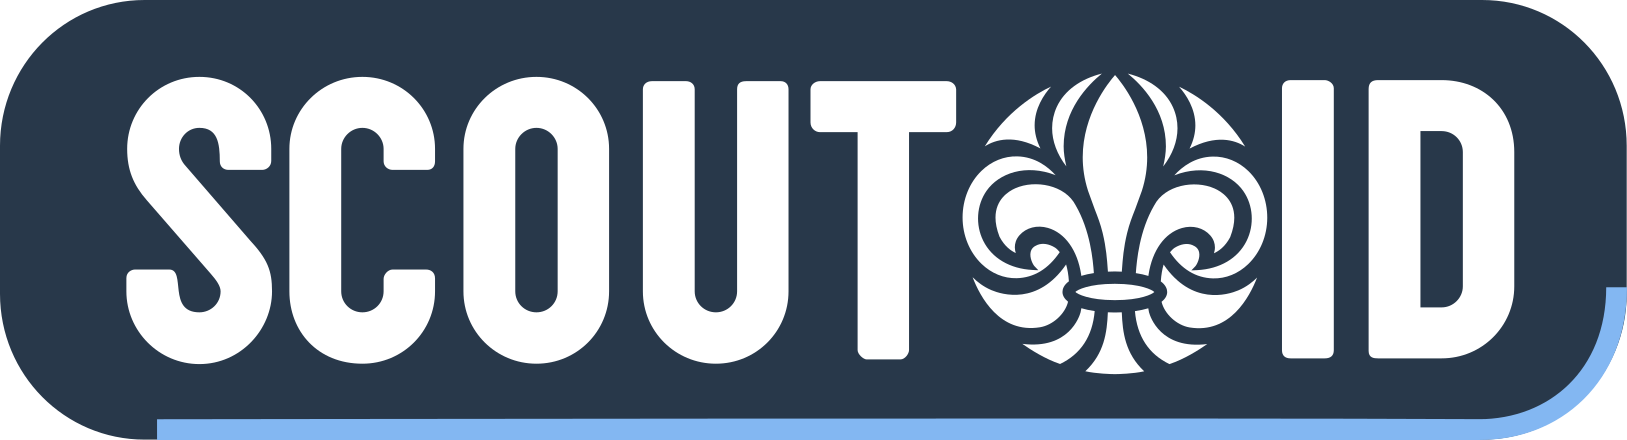 Button logo with ScoutID